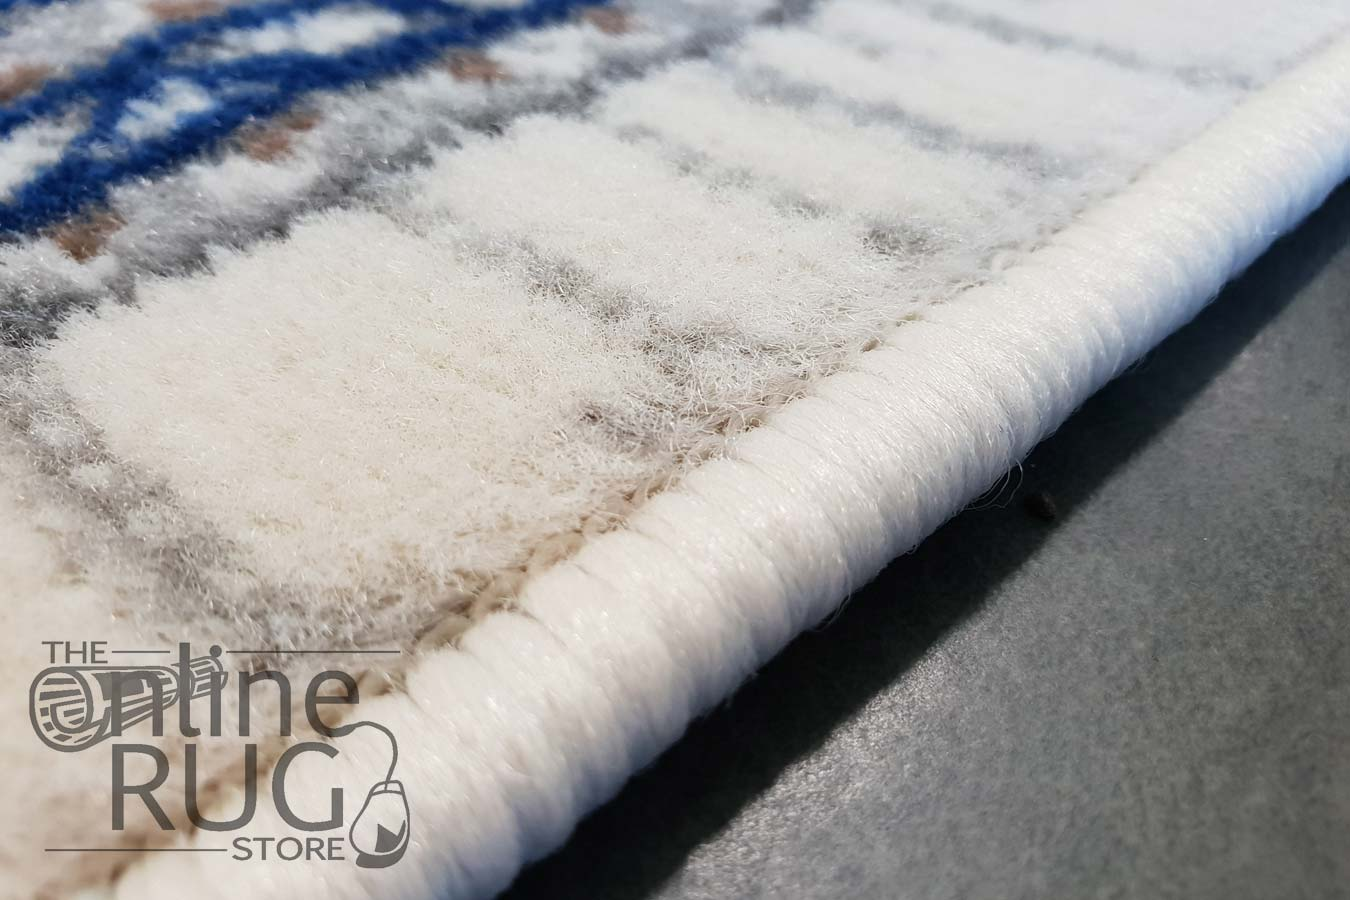 We offer a 30 Day Free return policy for all rugs. That means we pay for the shipping back. There is no restocking fee of any kind. At eSaleRugs we want to provide the best experience you've ever had buying any product online or offline, we try to appreciate and understand every suggestion and complaint.